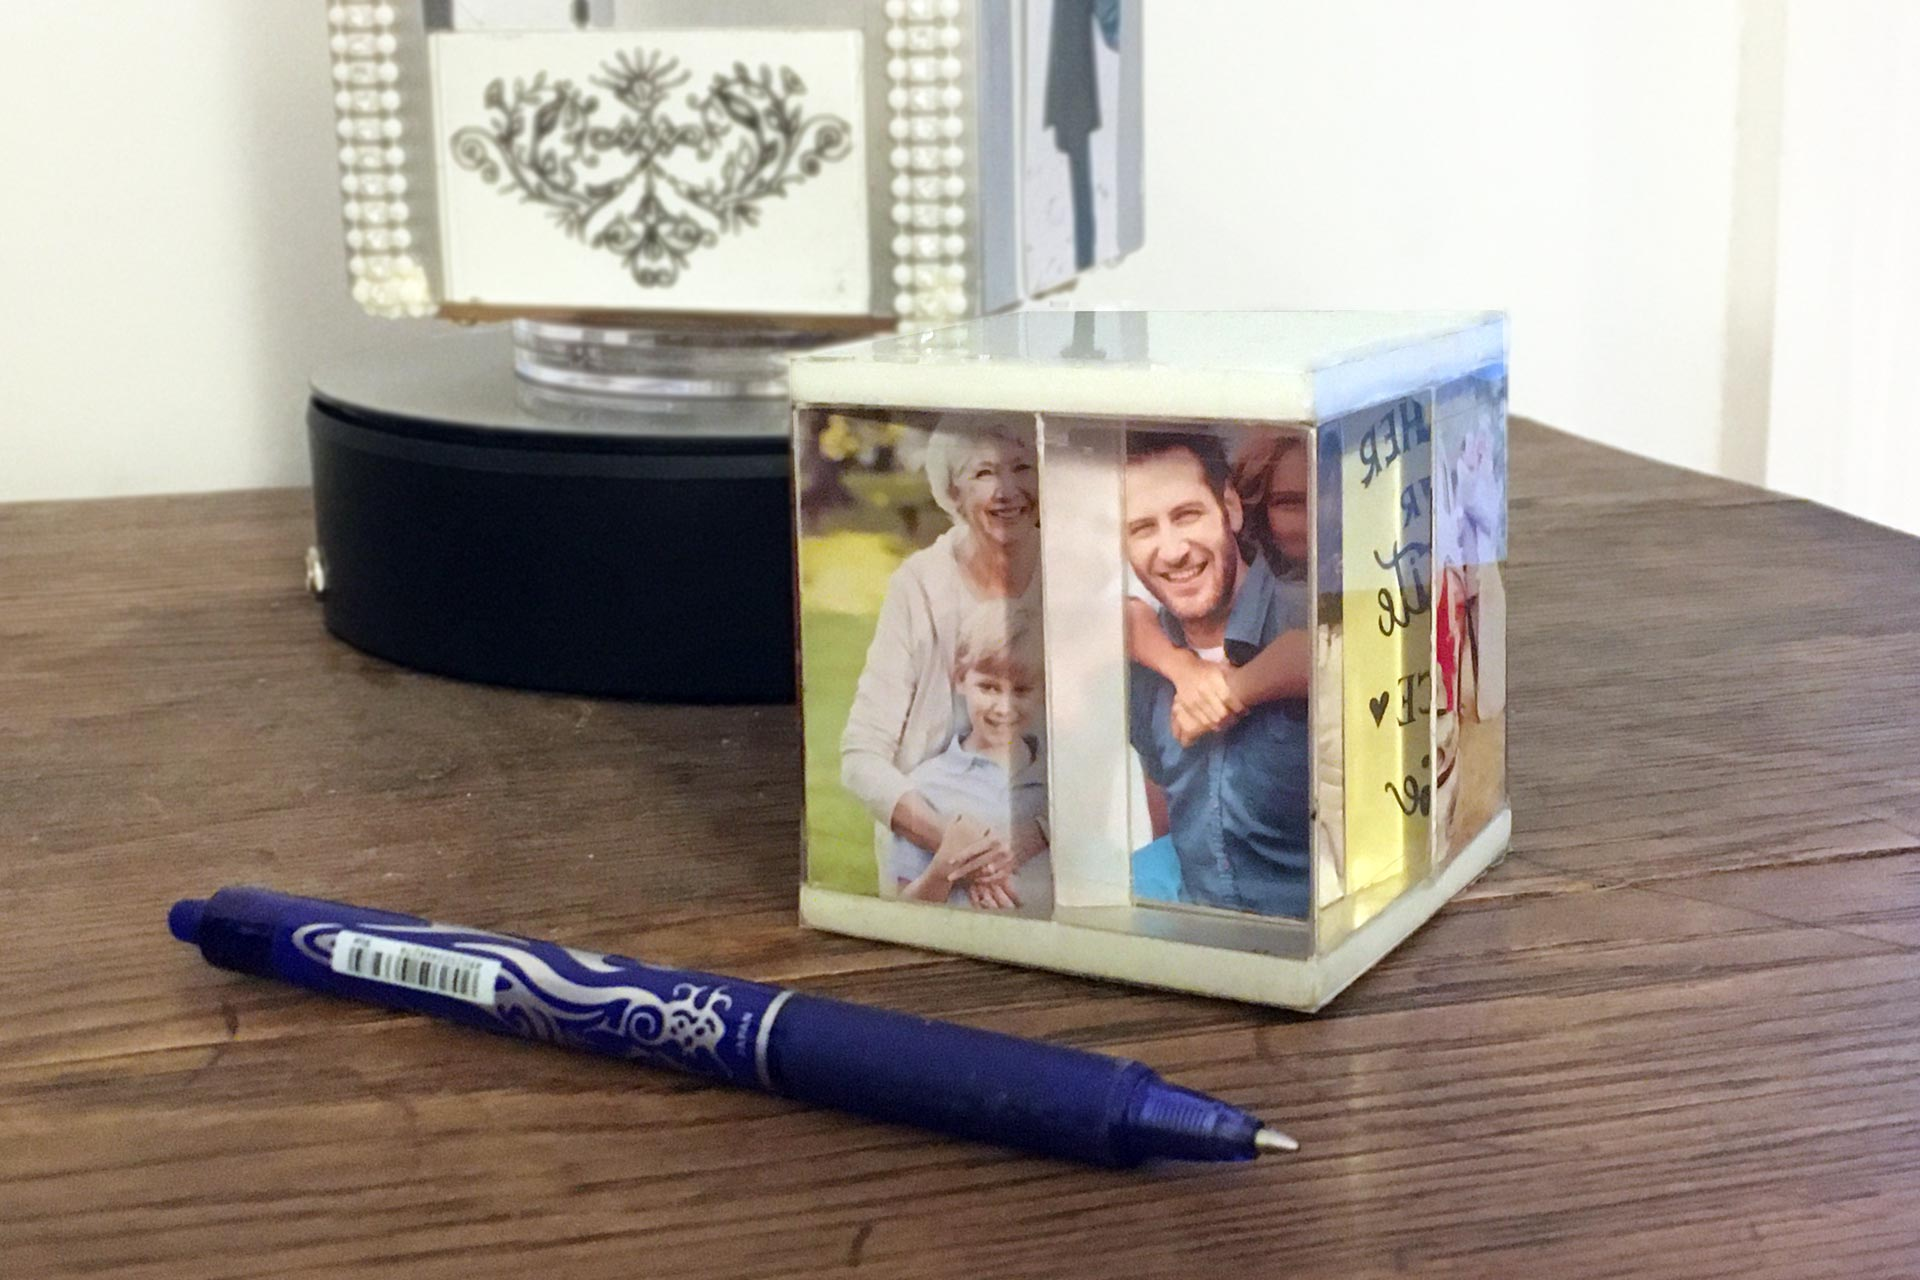 FunCube with personal family photographs set on a table